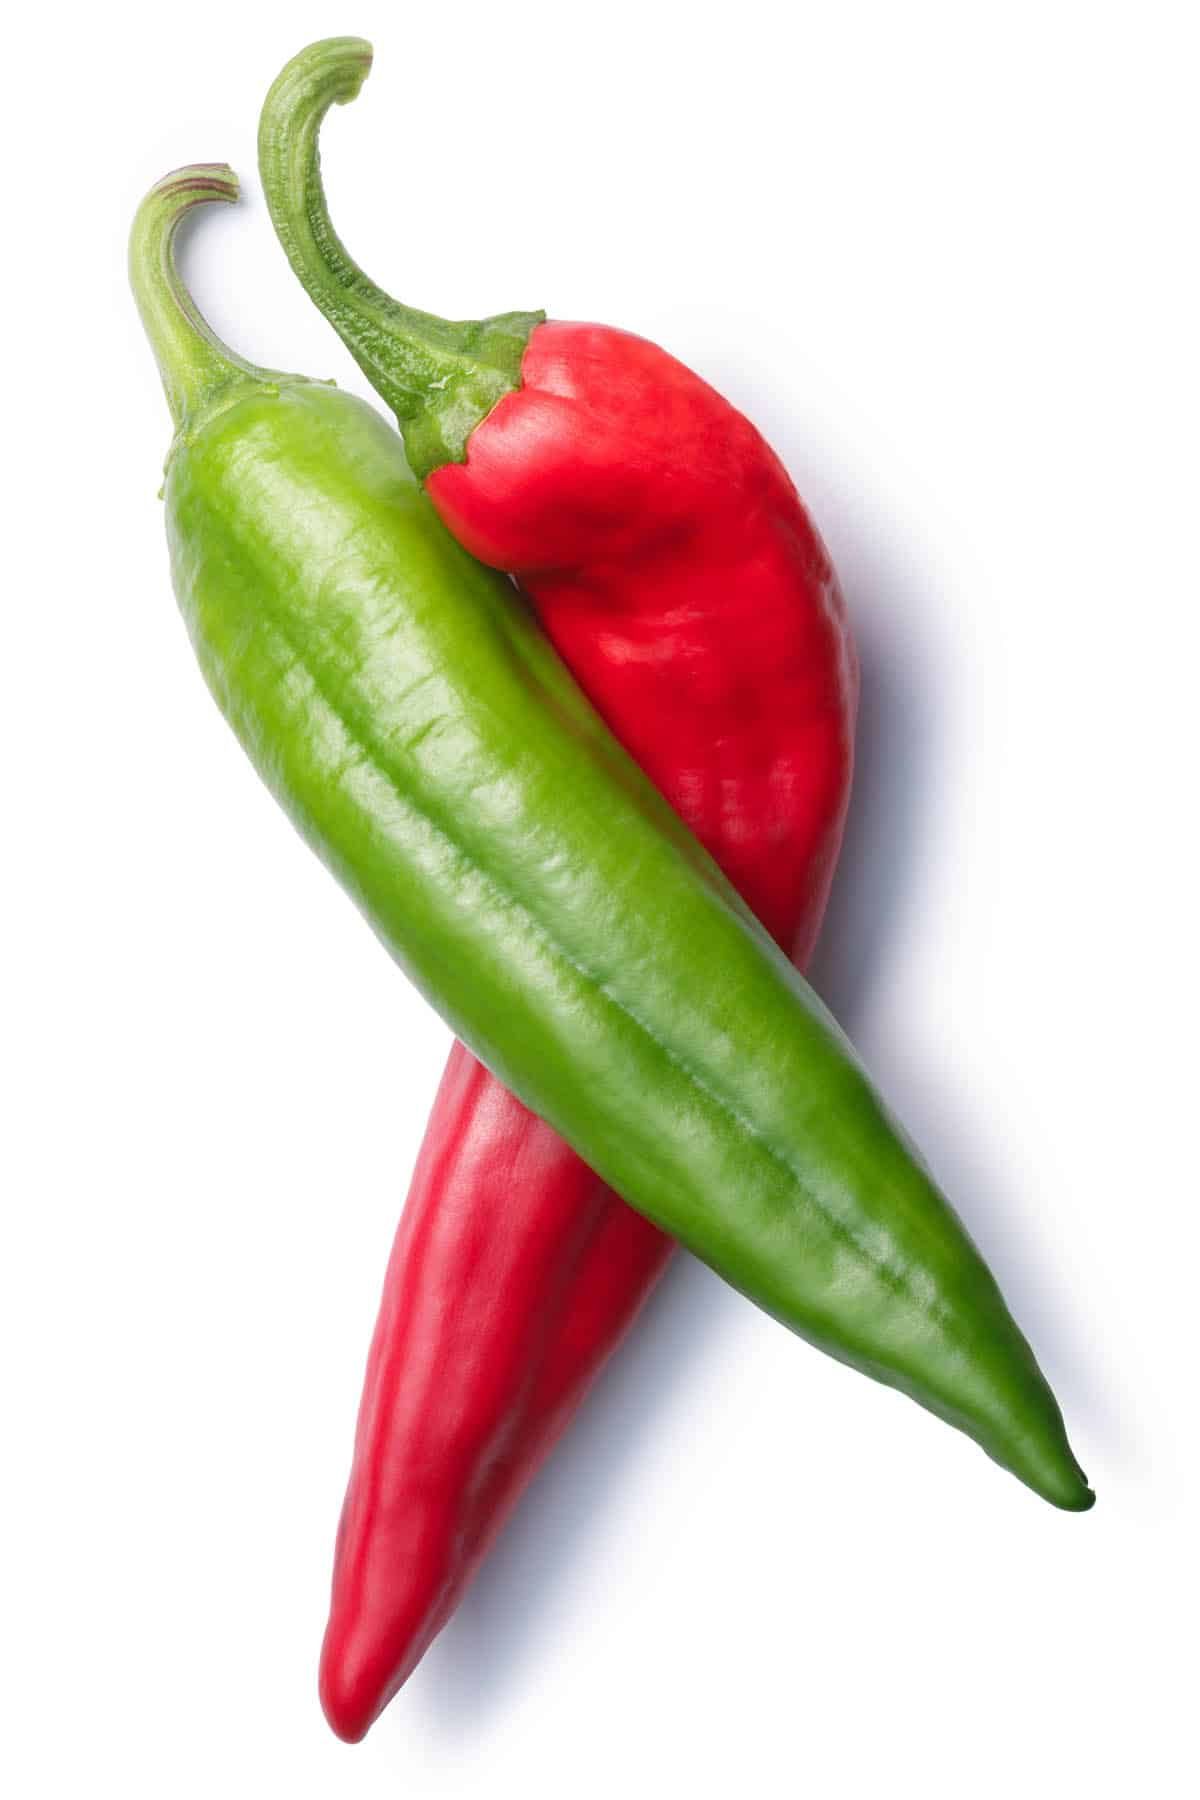 NuMex Joe E. Parker Chili Peppers